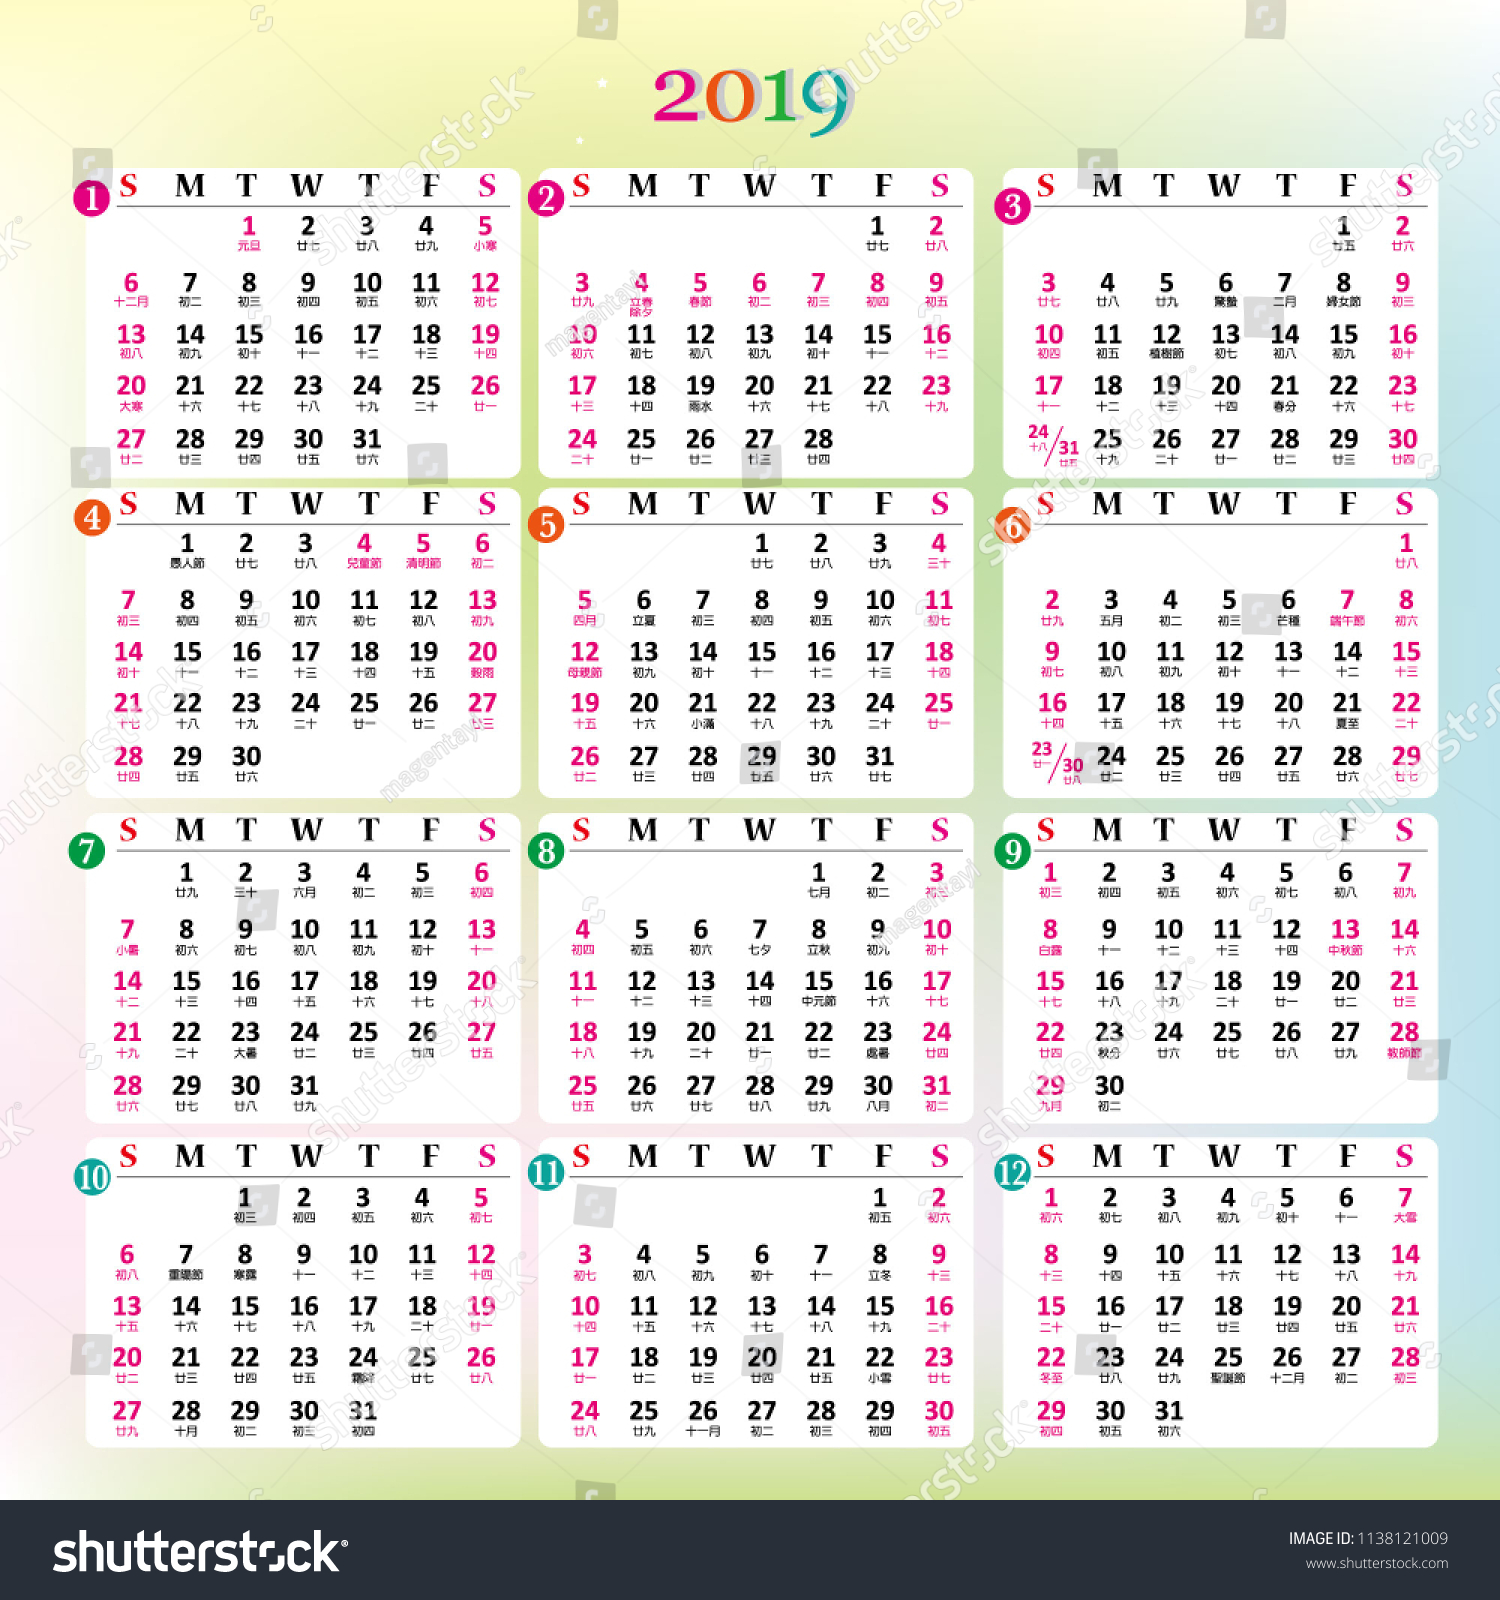 Lunar Calendar 2019 Chinese Chinese Calendar Planner Template 2019 Year Stock Vector (Royalty